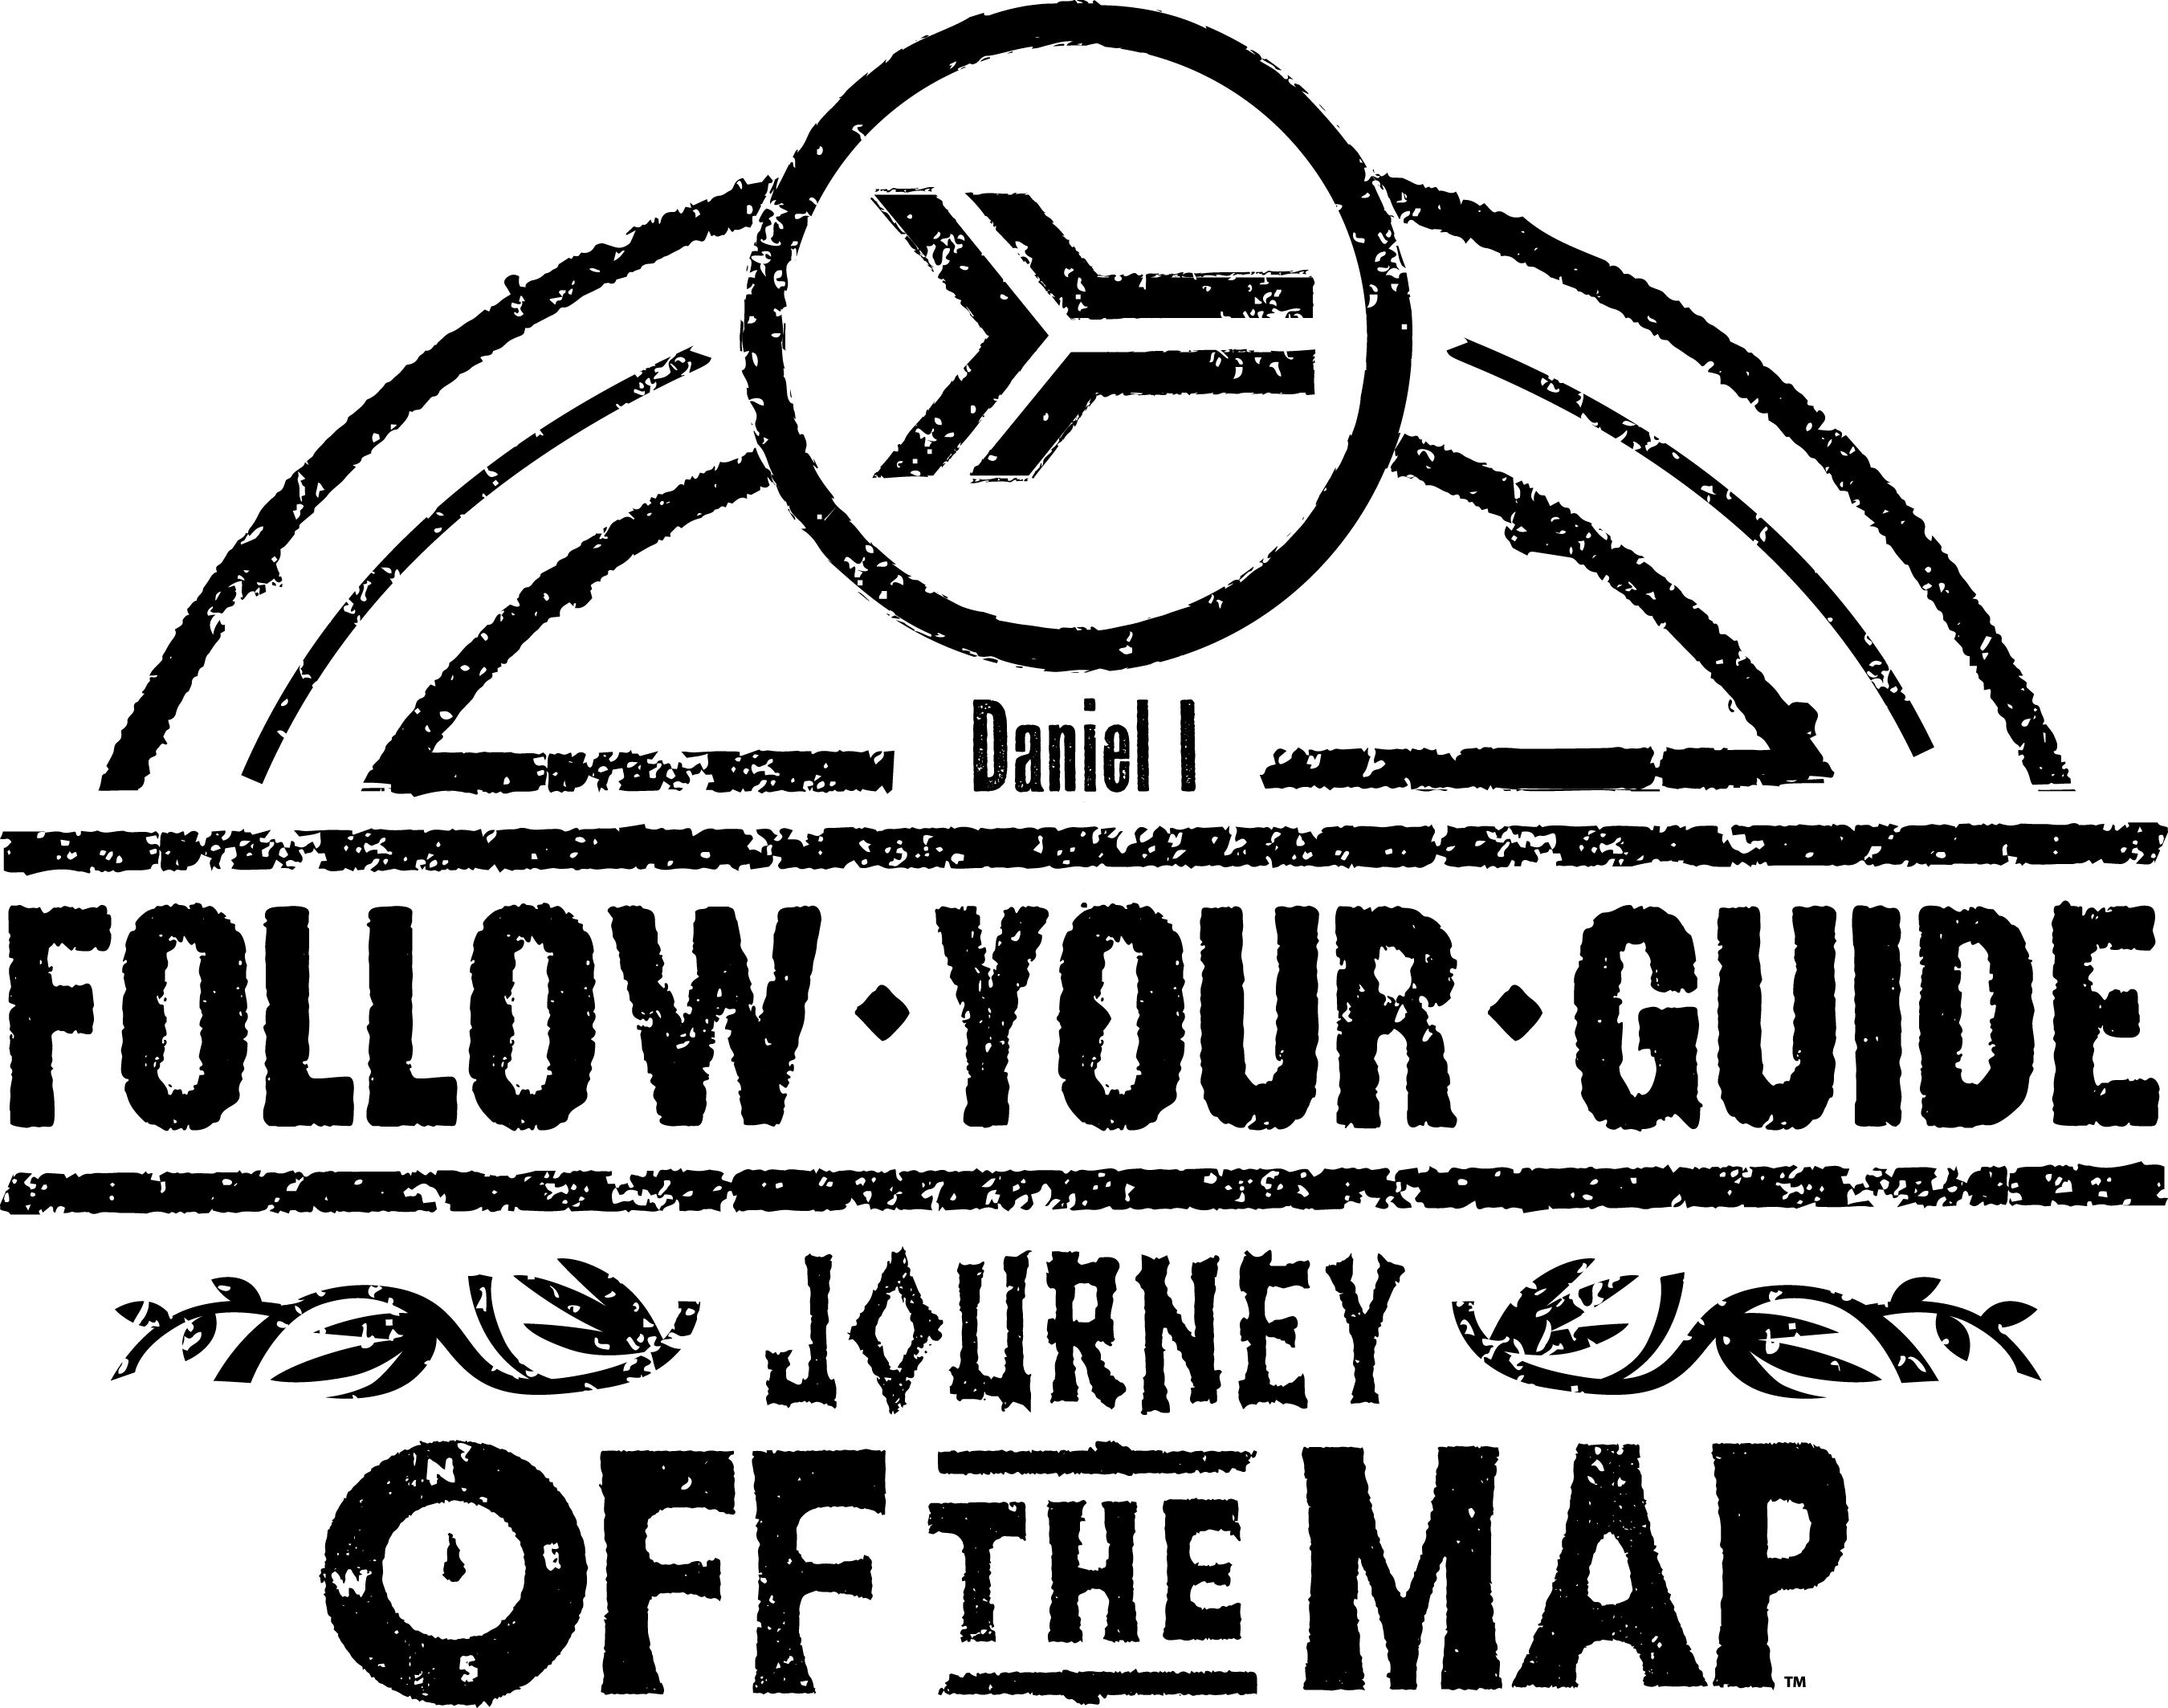 Day 2 Life Application - FOLLOW YOUR GUIDE #lifeway #vbs #journeyoffthemap